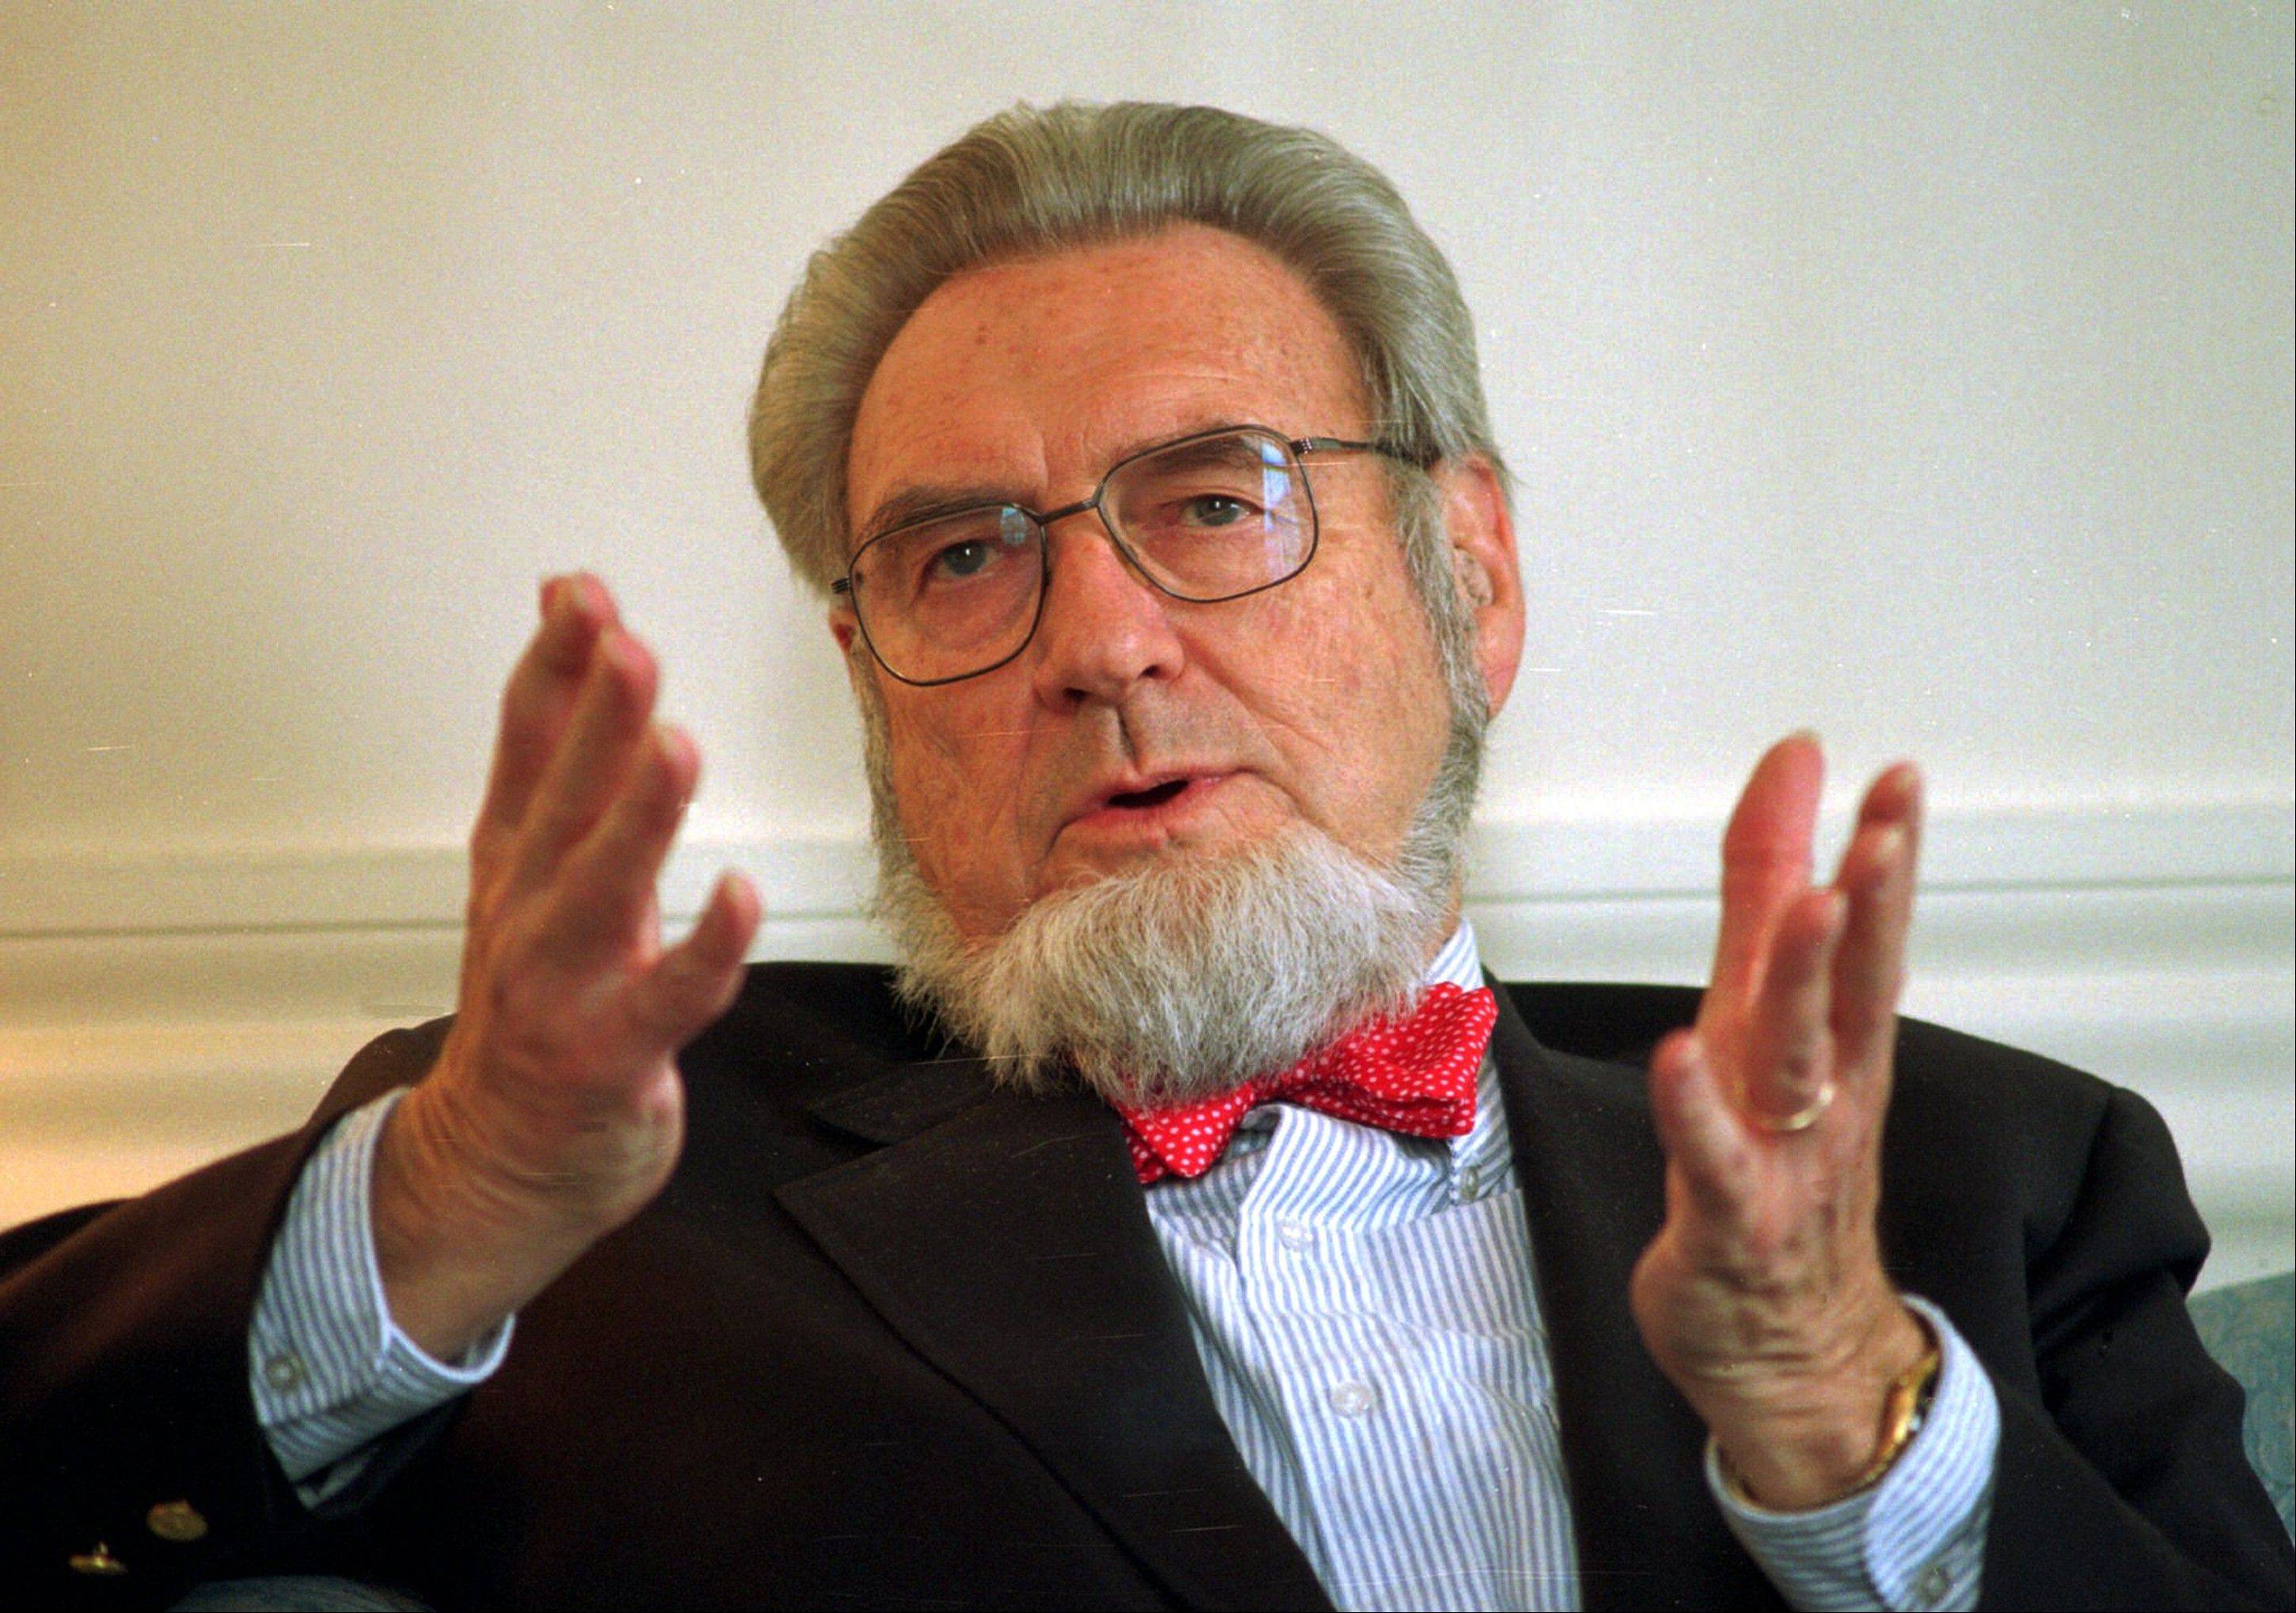 Former Surgeon General Dr. C. Everett Koop, who raised the profile of the surgeon general by riveting America's attention on the then-emerging disease known as AIDS and by railing against smoking, died Monday at age 96.